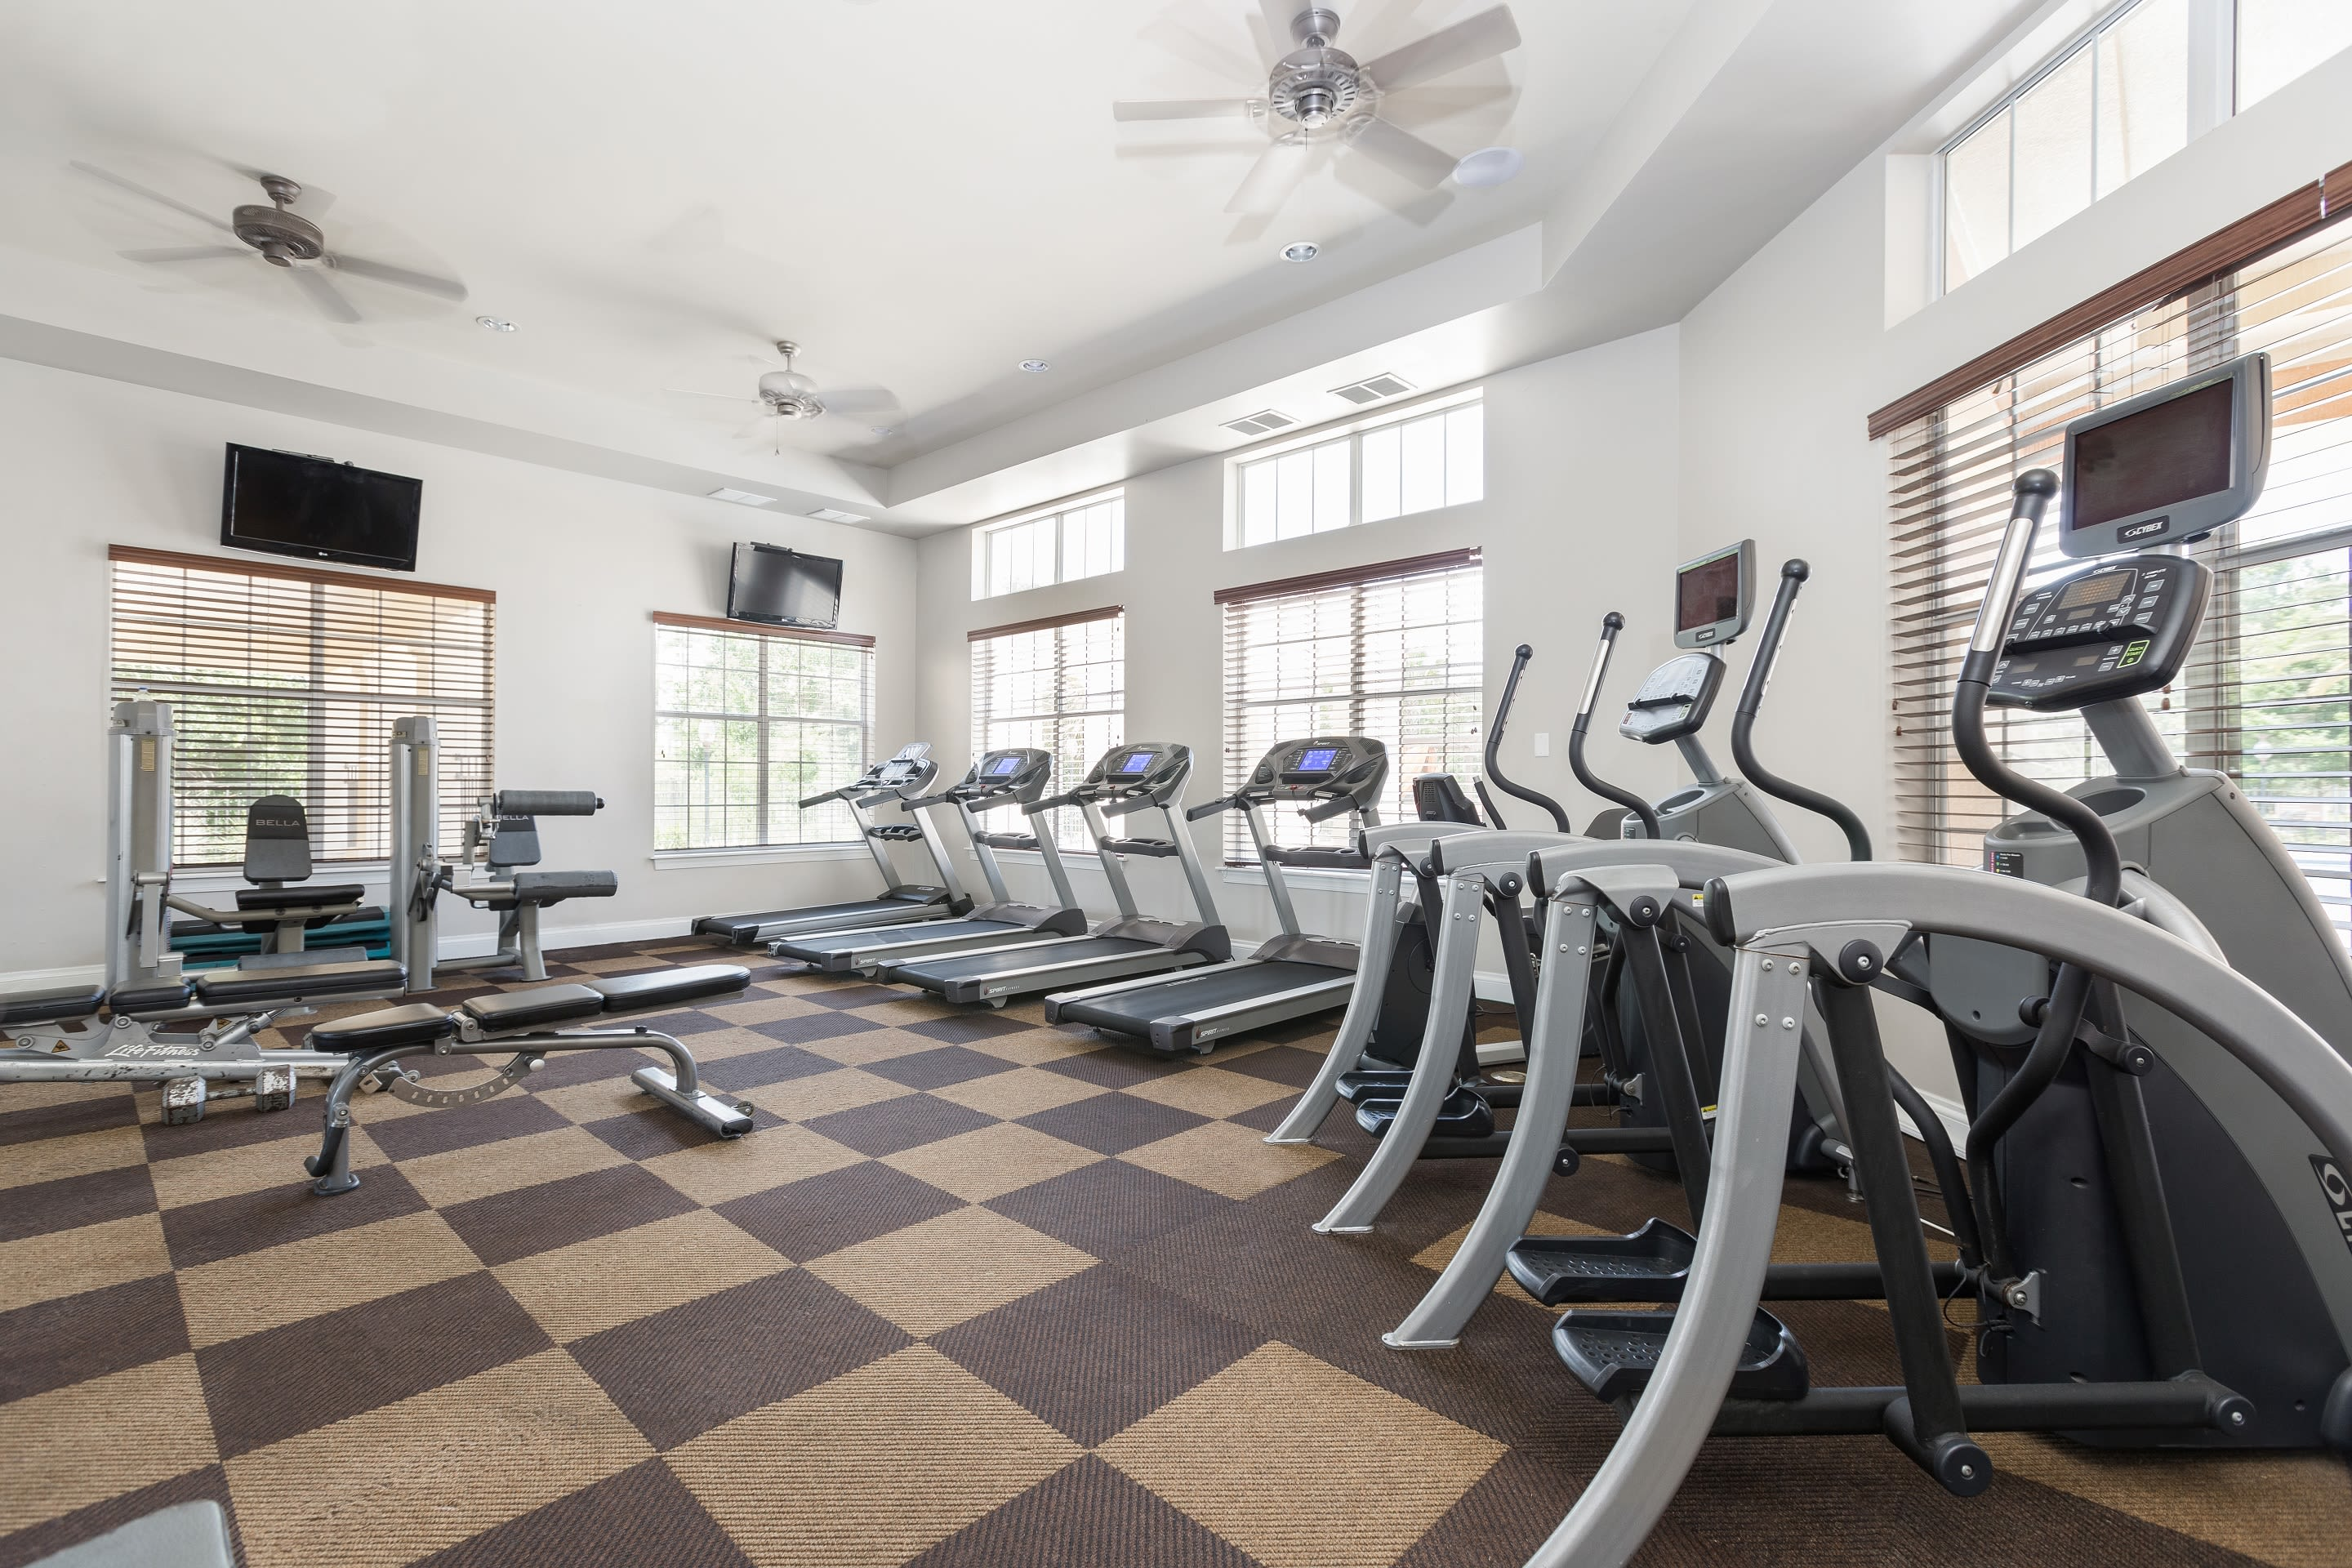 Fitness center at The Aspect in Kissimmee, Florida